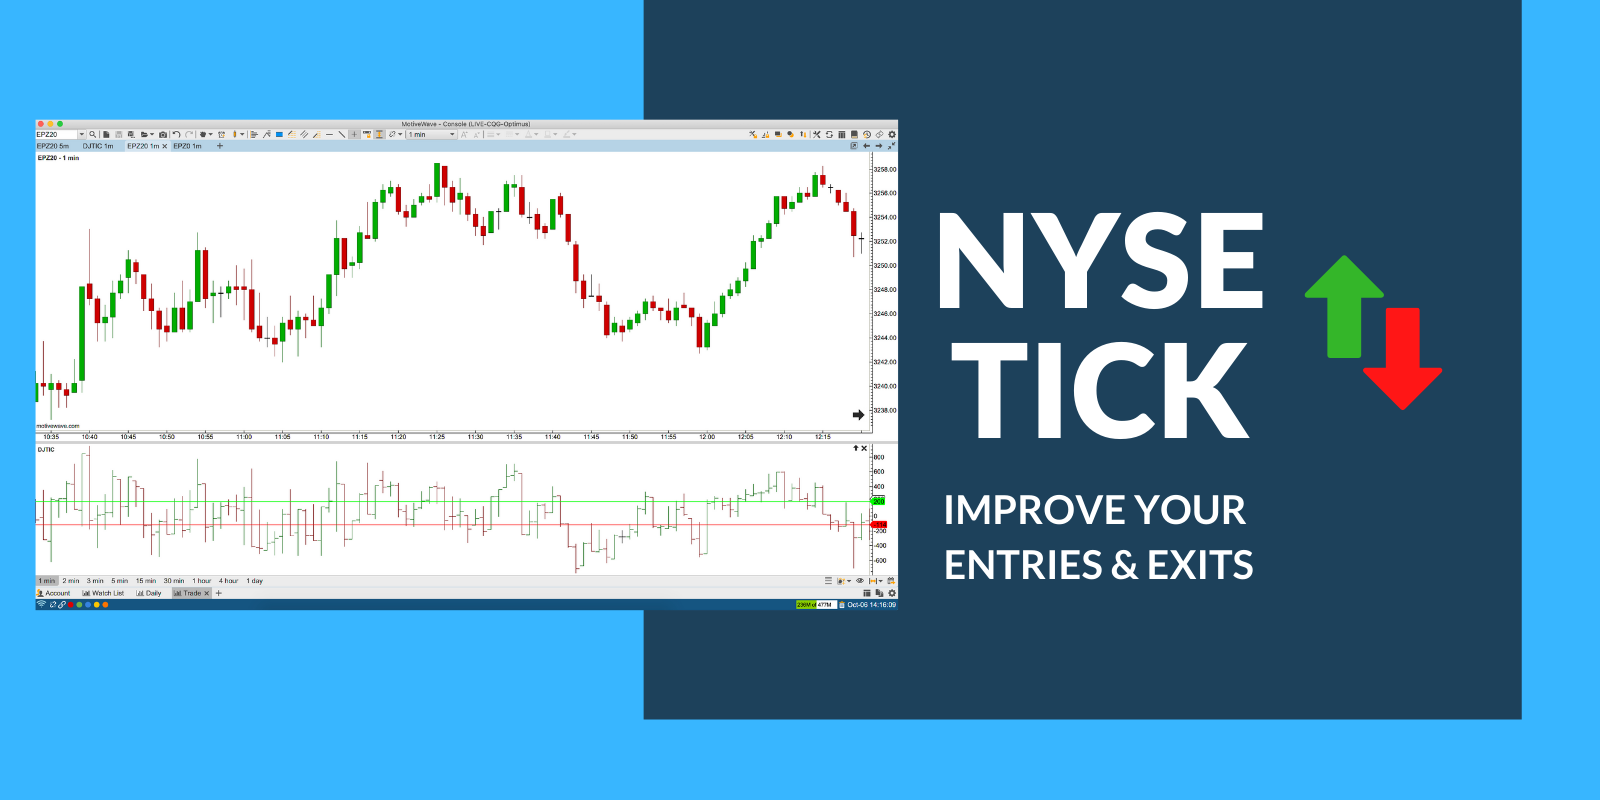 NYSE Tick – Instantly Boost Your Day Trading Profits